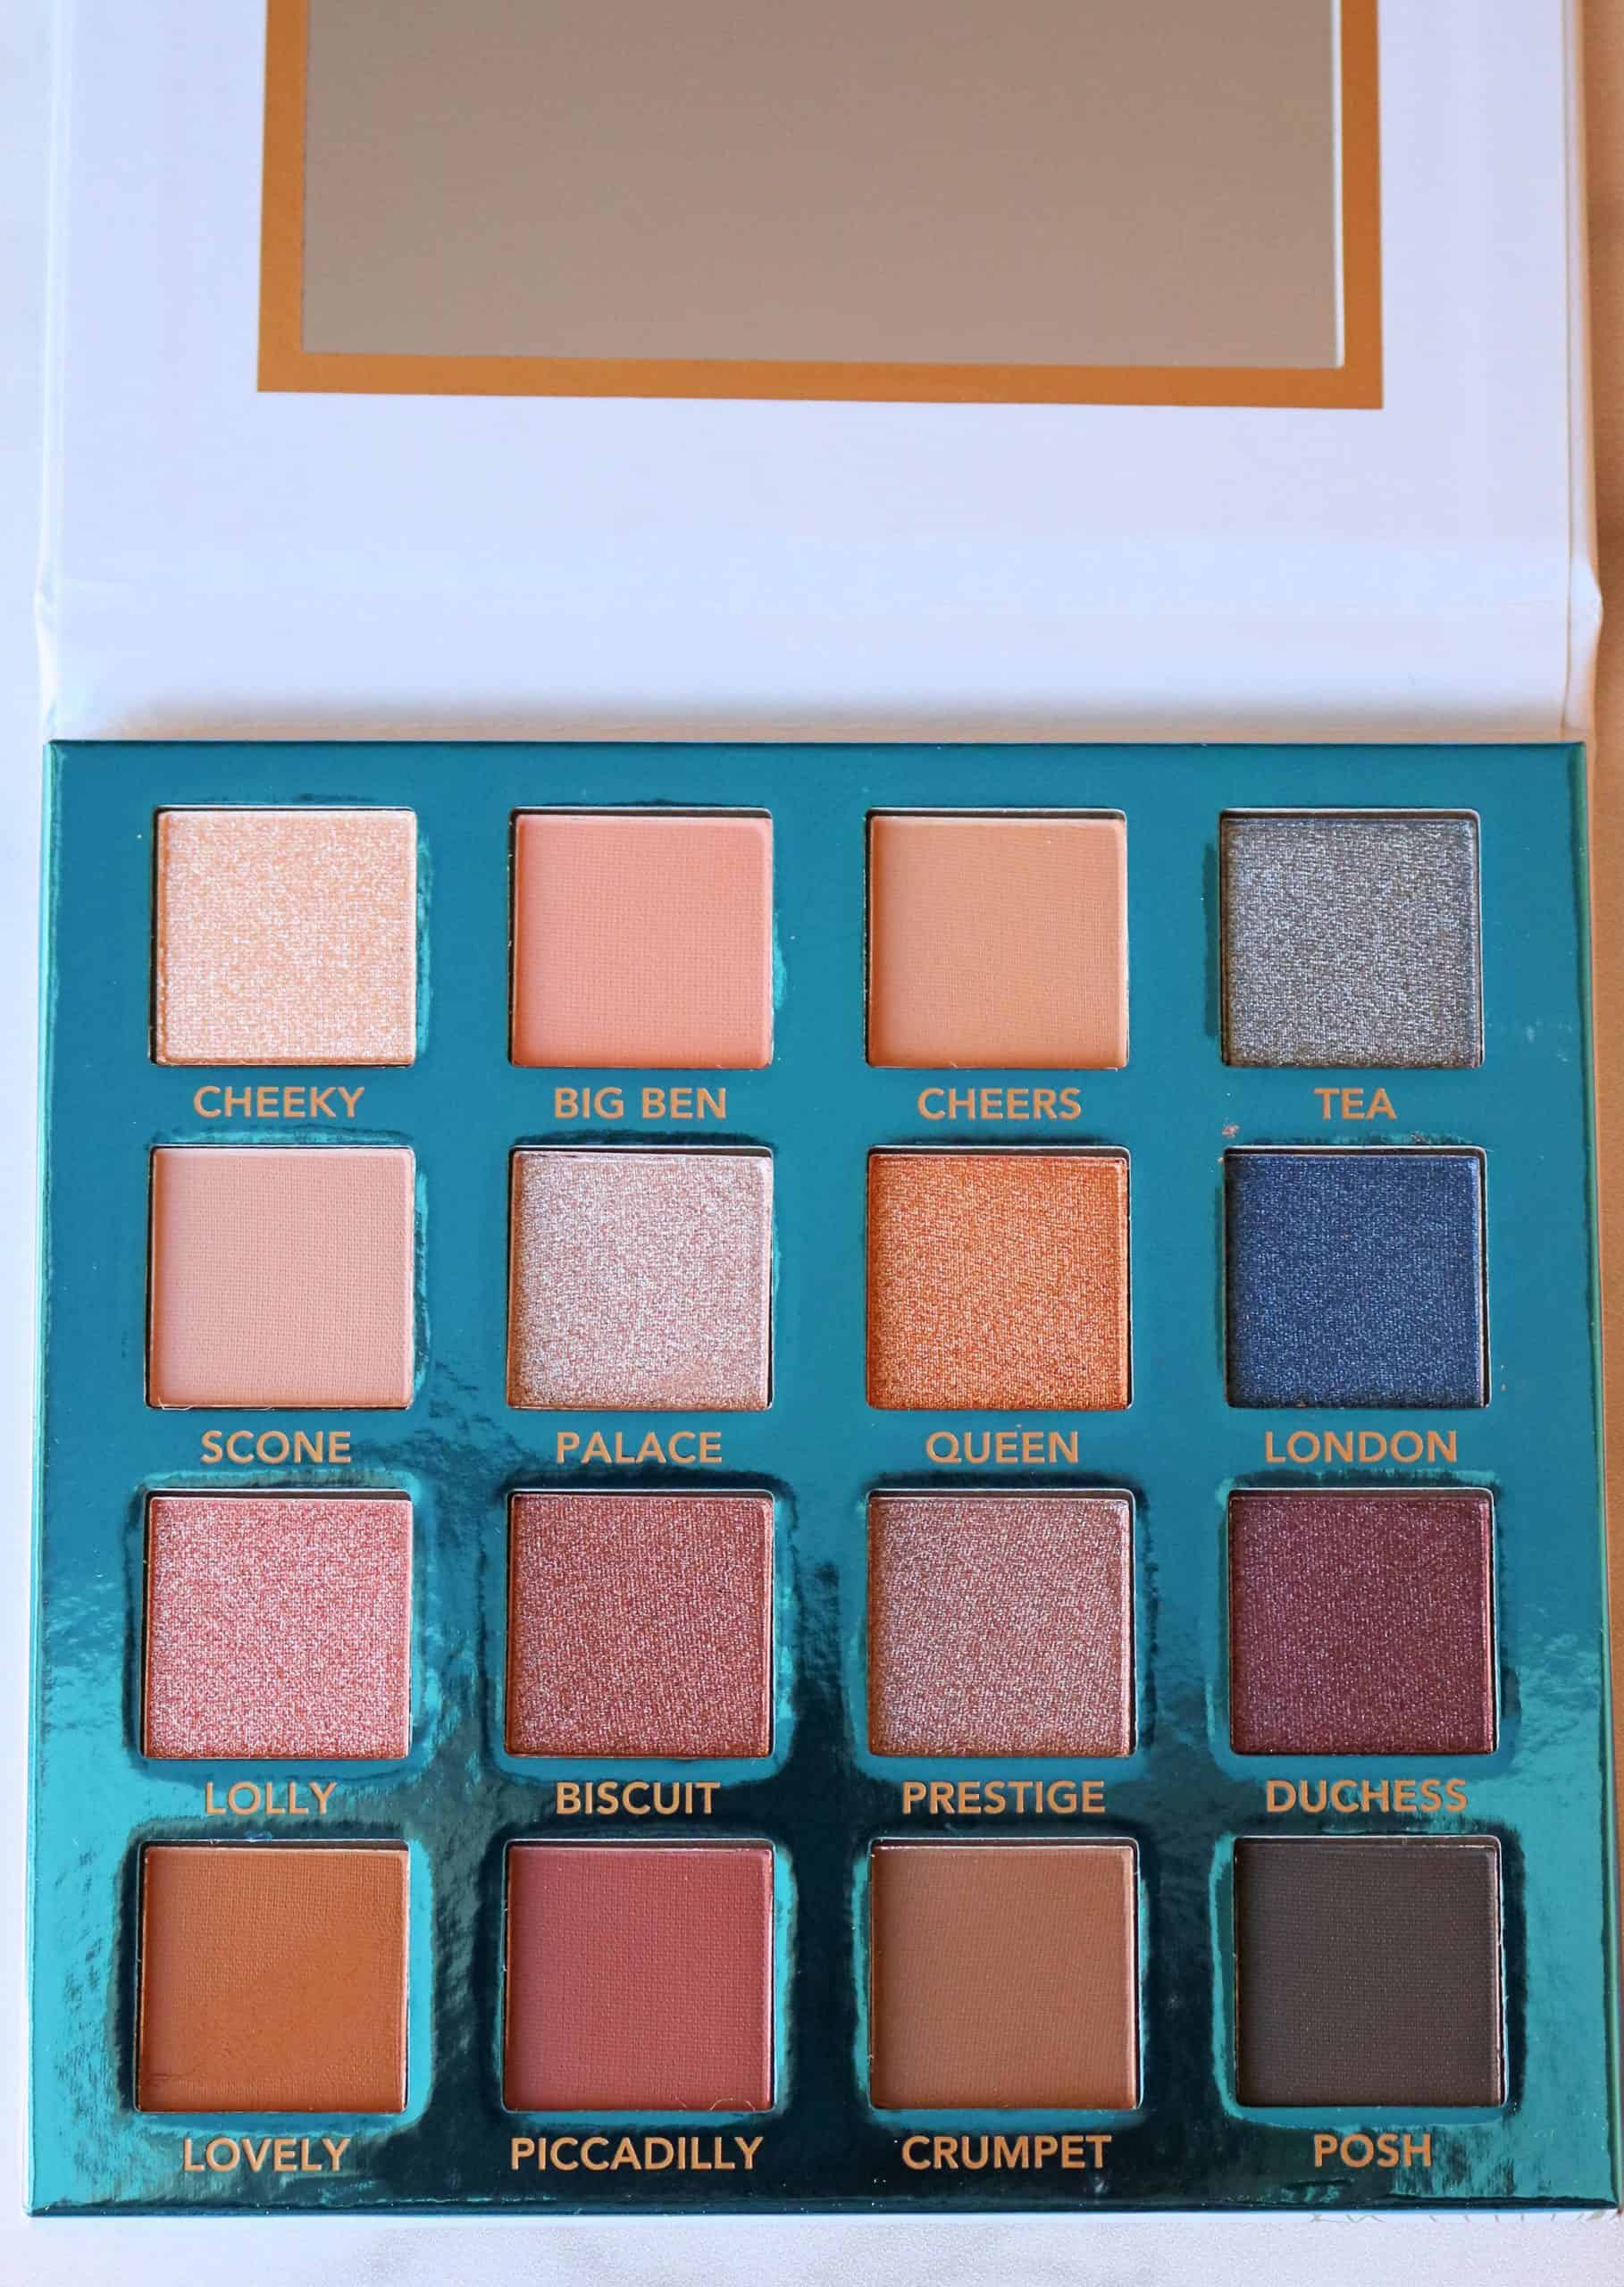 Looking for a beautiful and affordable drugstore eyeshadow palette? Check out my review and swatches of the BH Cosmetics Love in London Palette, with 16 gorgeous, cool-toned eyeshadow shades perfect for achieving everyday and smokey eye makeup looks! #drugstoremakeup #bhcosmetics #eyeshadowpalette #makeupreview